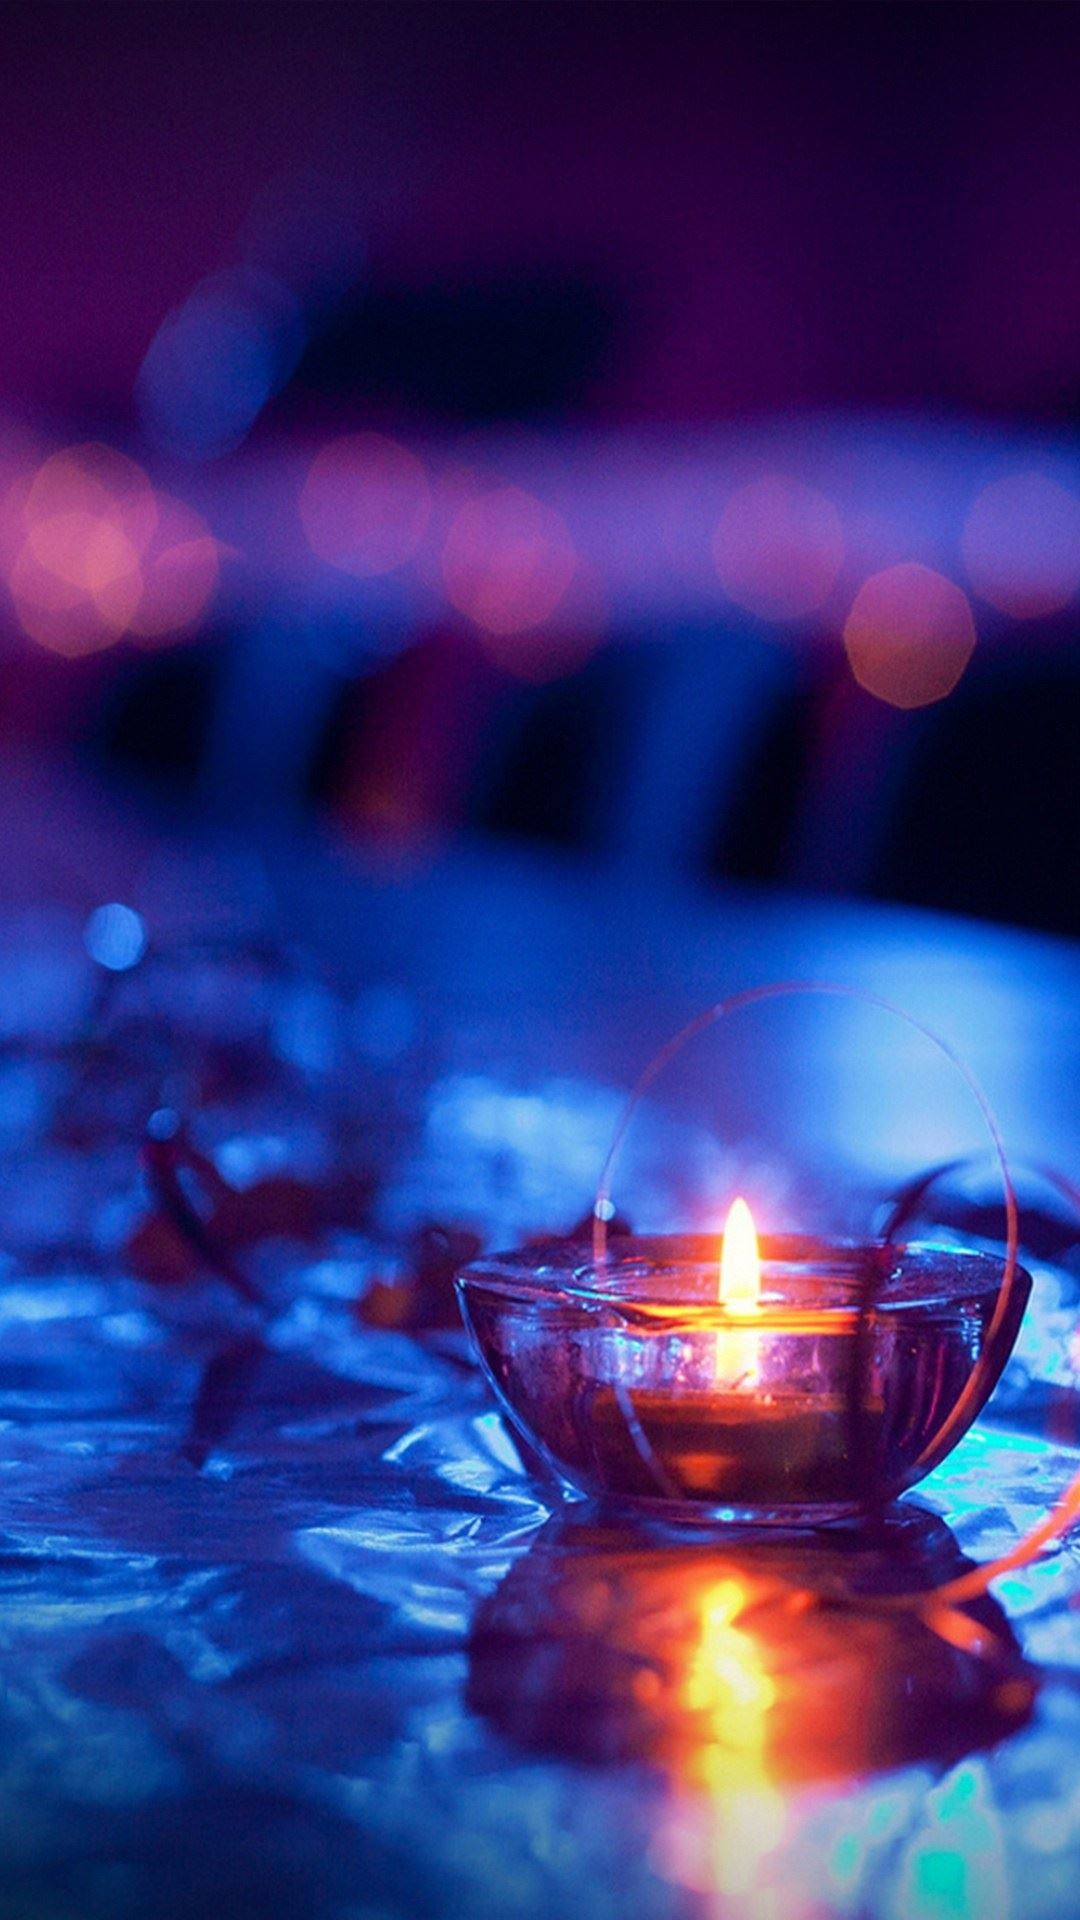 Candle Light iPhone 6 Plus HD Wallpaper …